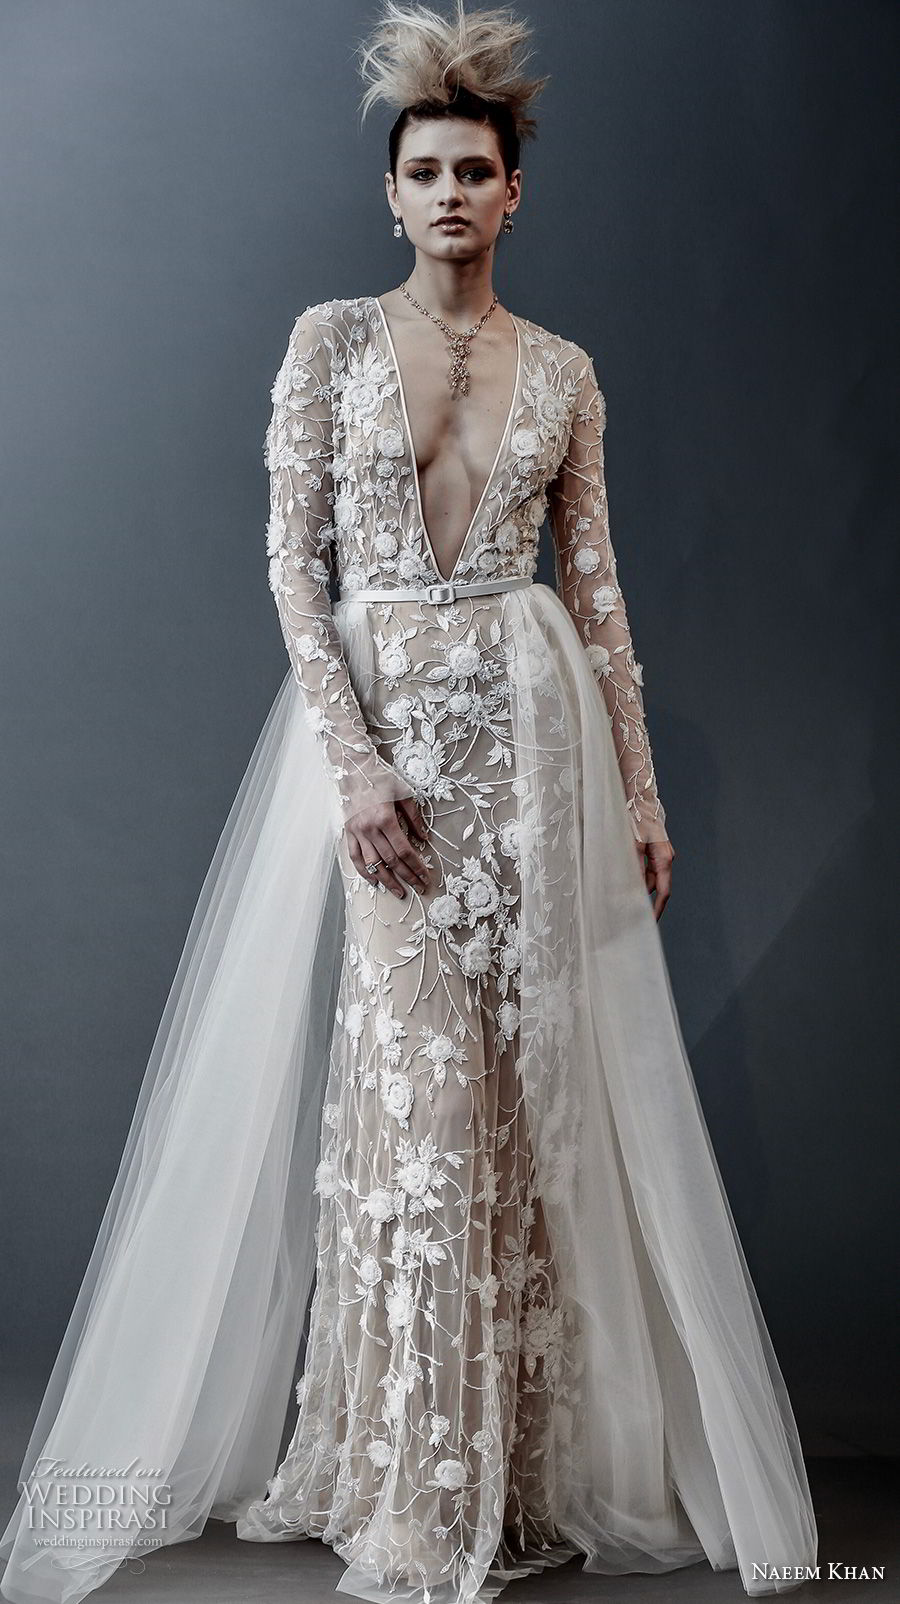 naeem khan spring 2019 bridal long sleeves deep v neck full embellishment sexy romantic sheath wedding dress a line overskirt keyhole back sweep train (3) mv